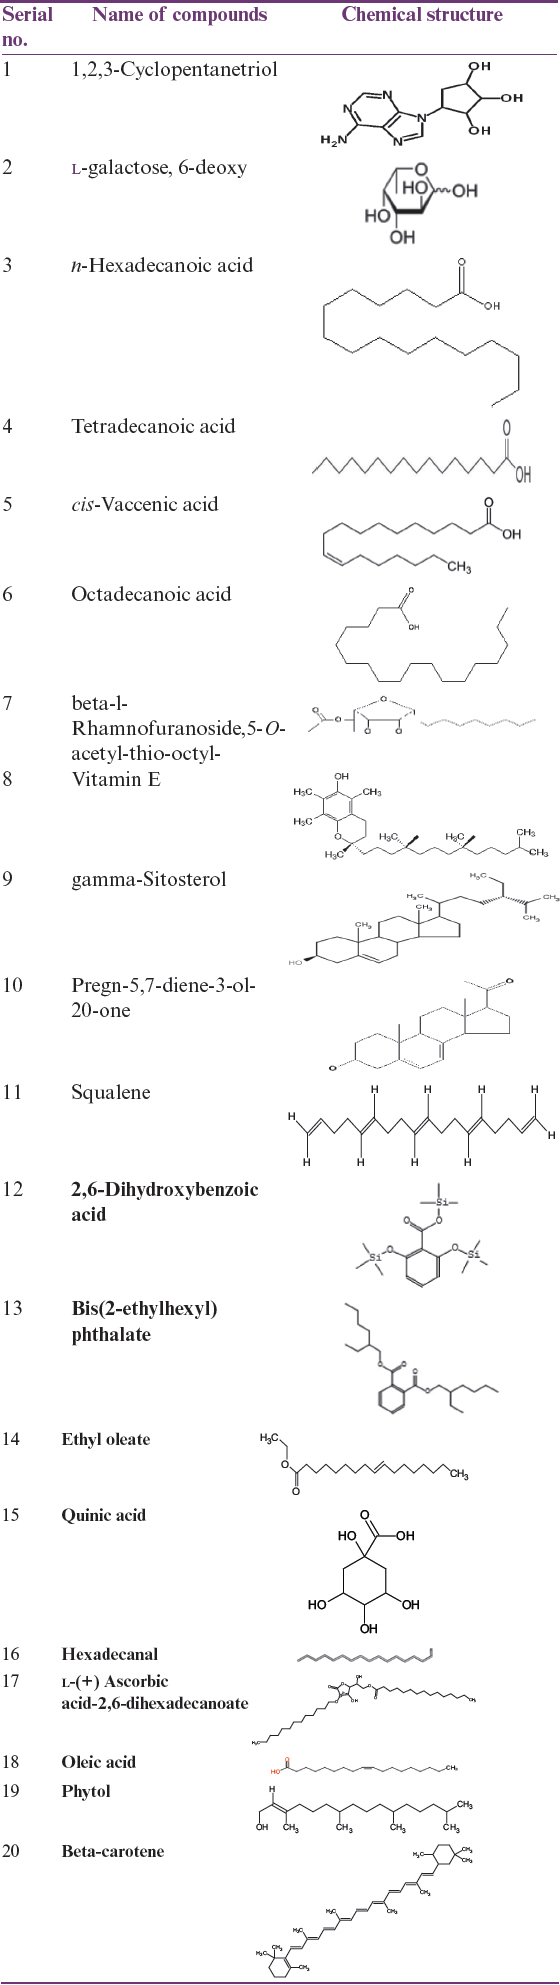 A review of the phytochemical and pharmacological characteristics of